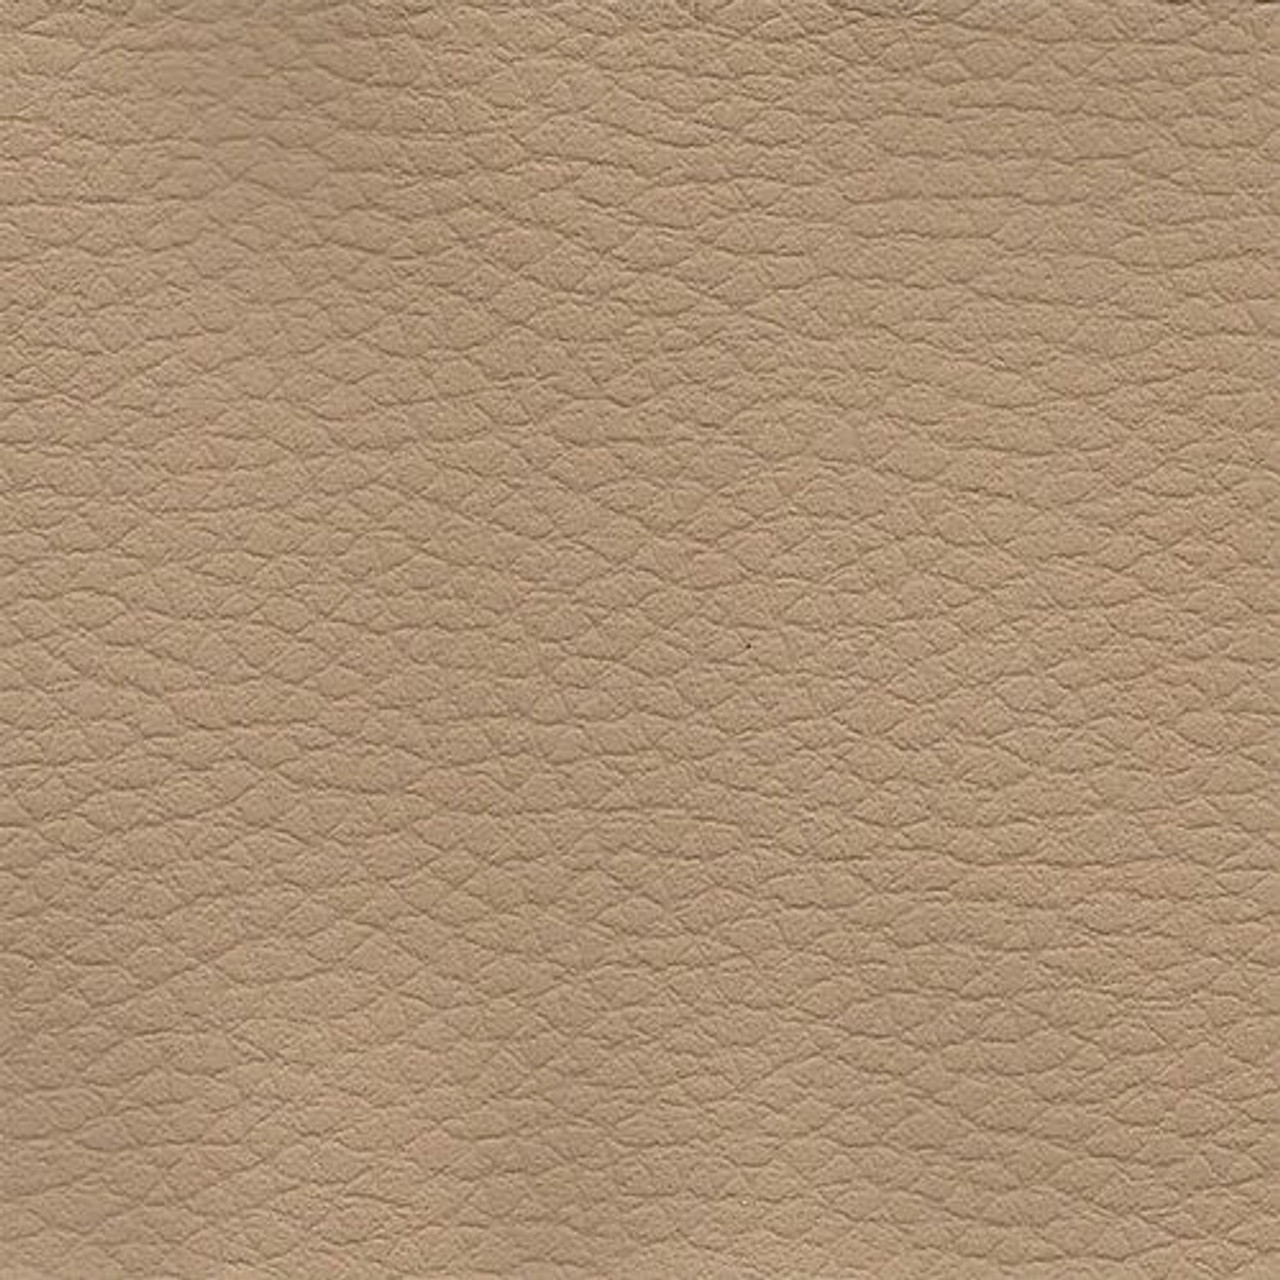 Samples available upon request - Satin, non-shiny finish